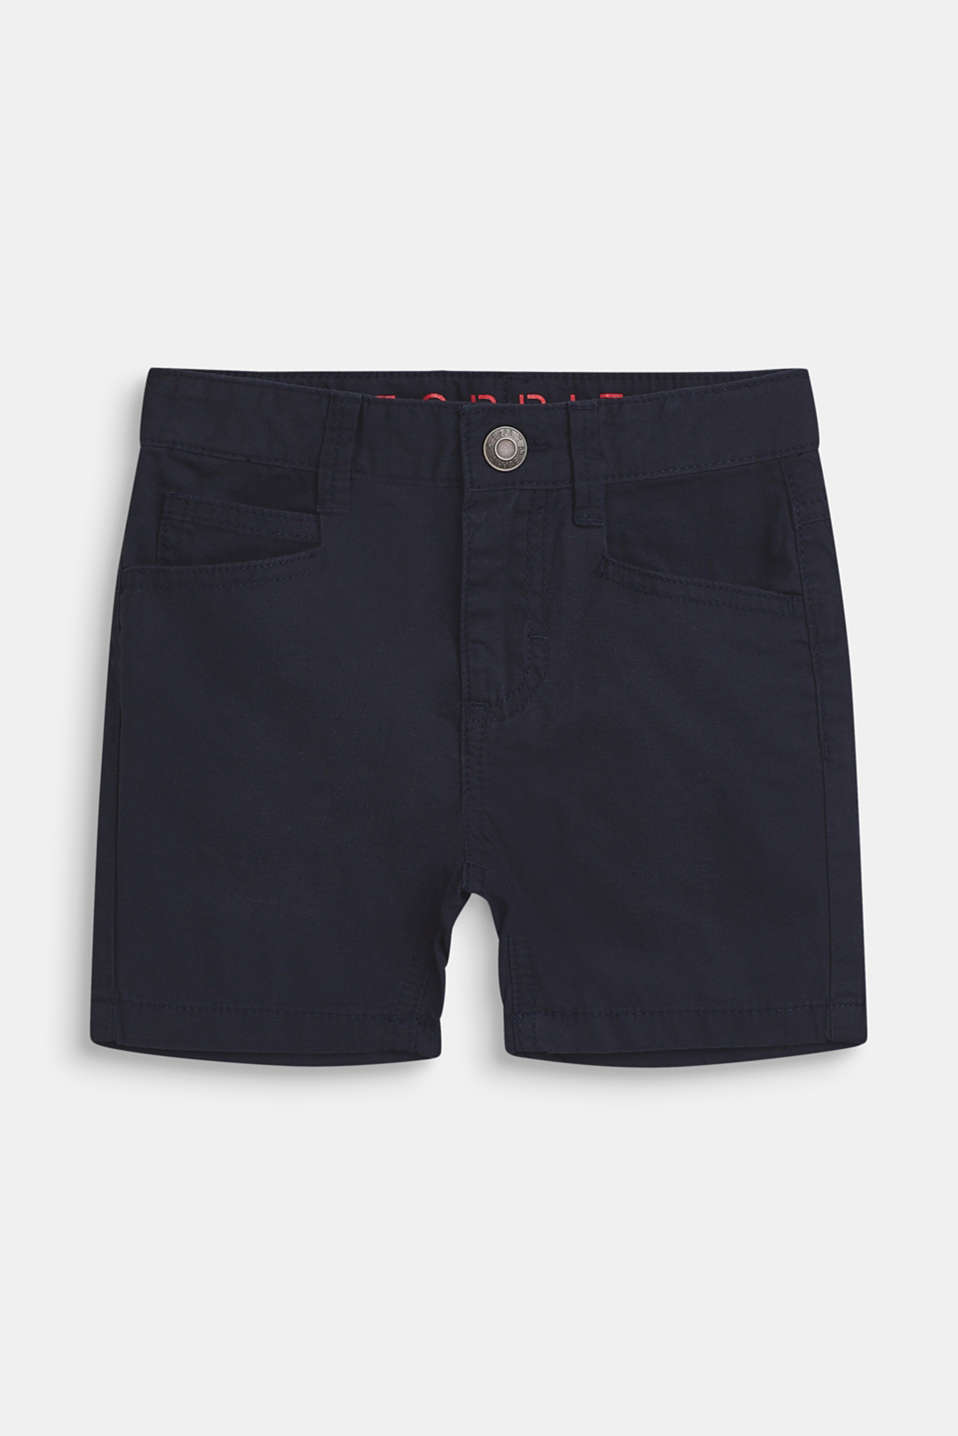 Esprit - shorts in 100% cotton